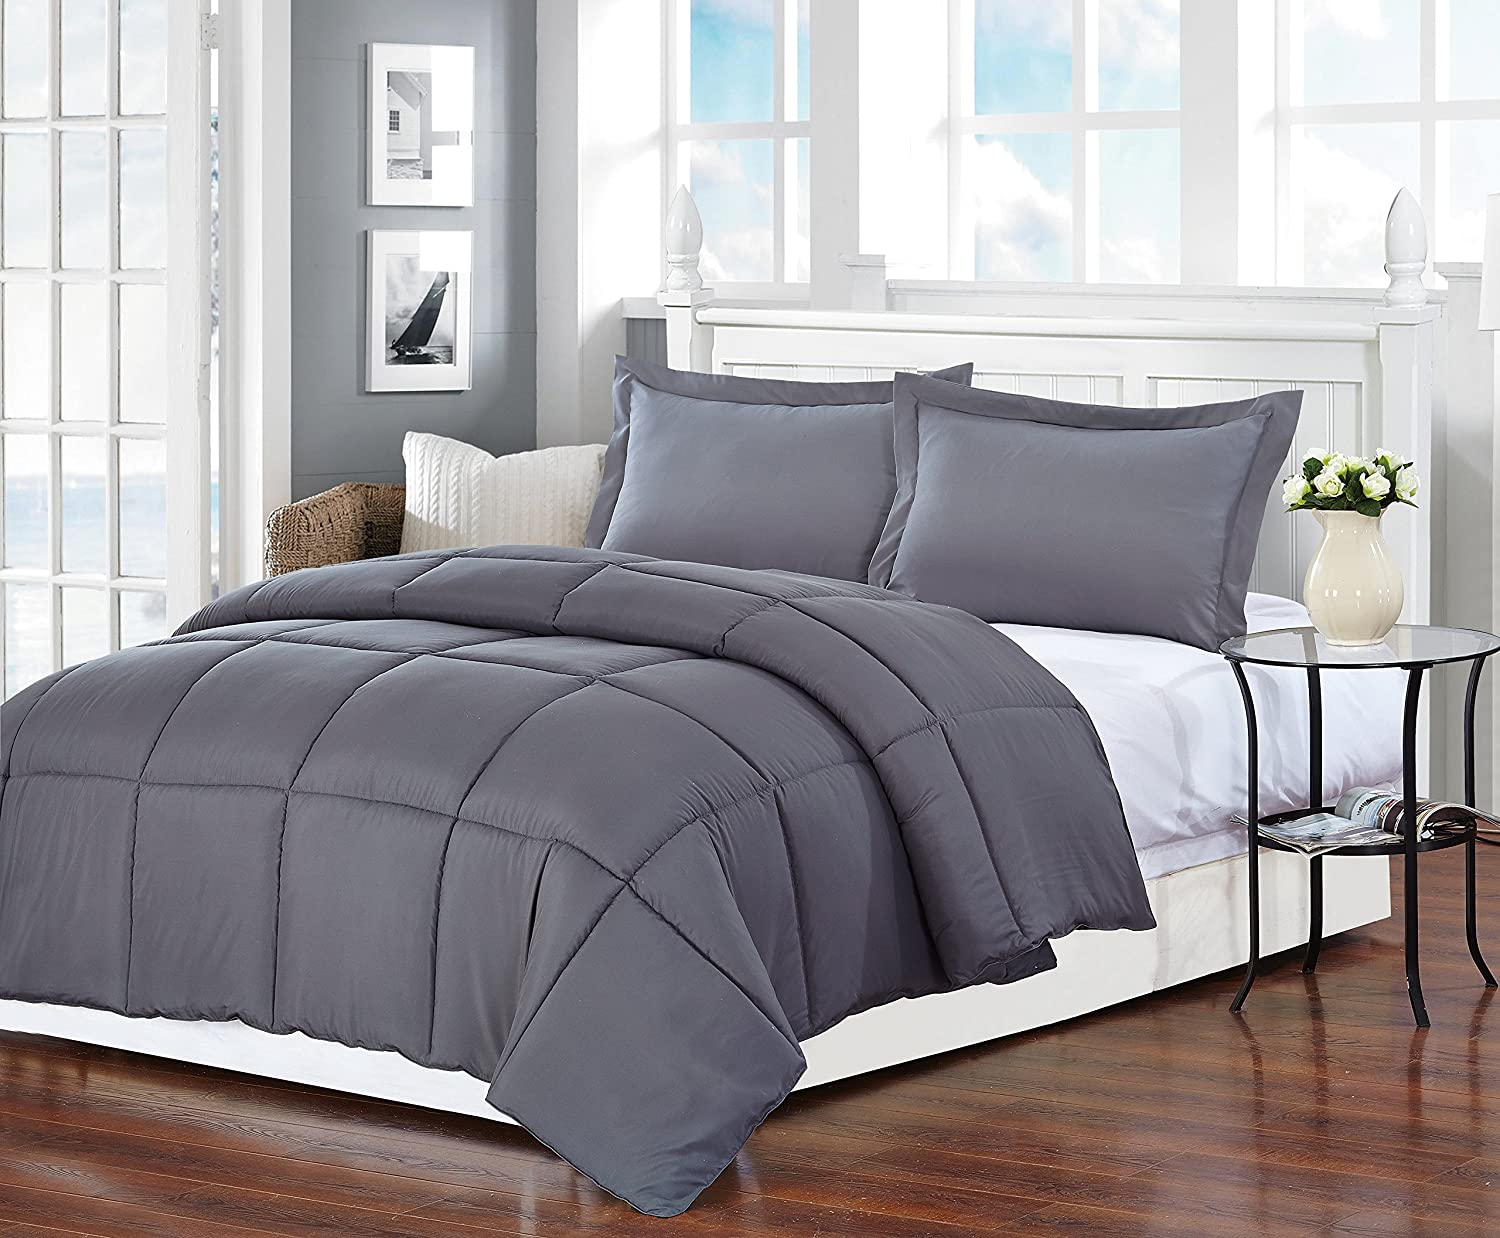 Gray Polyester Medium Warmth Twin Down Alternative Comforter Duvet